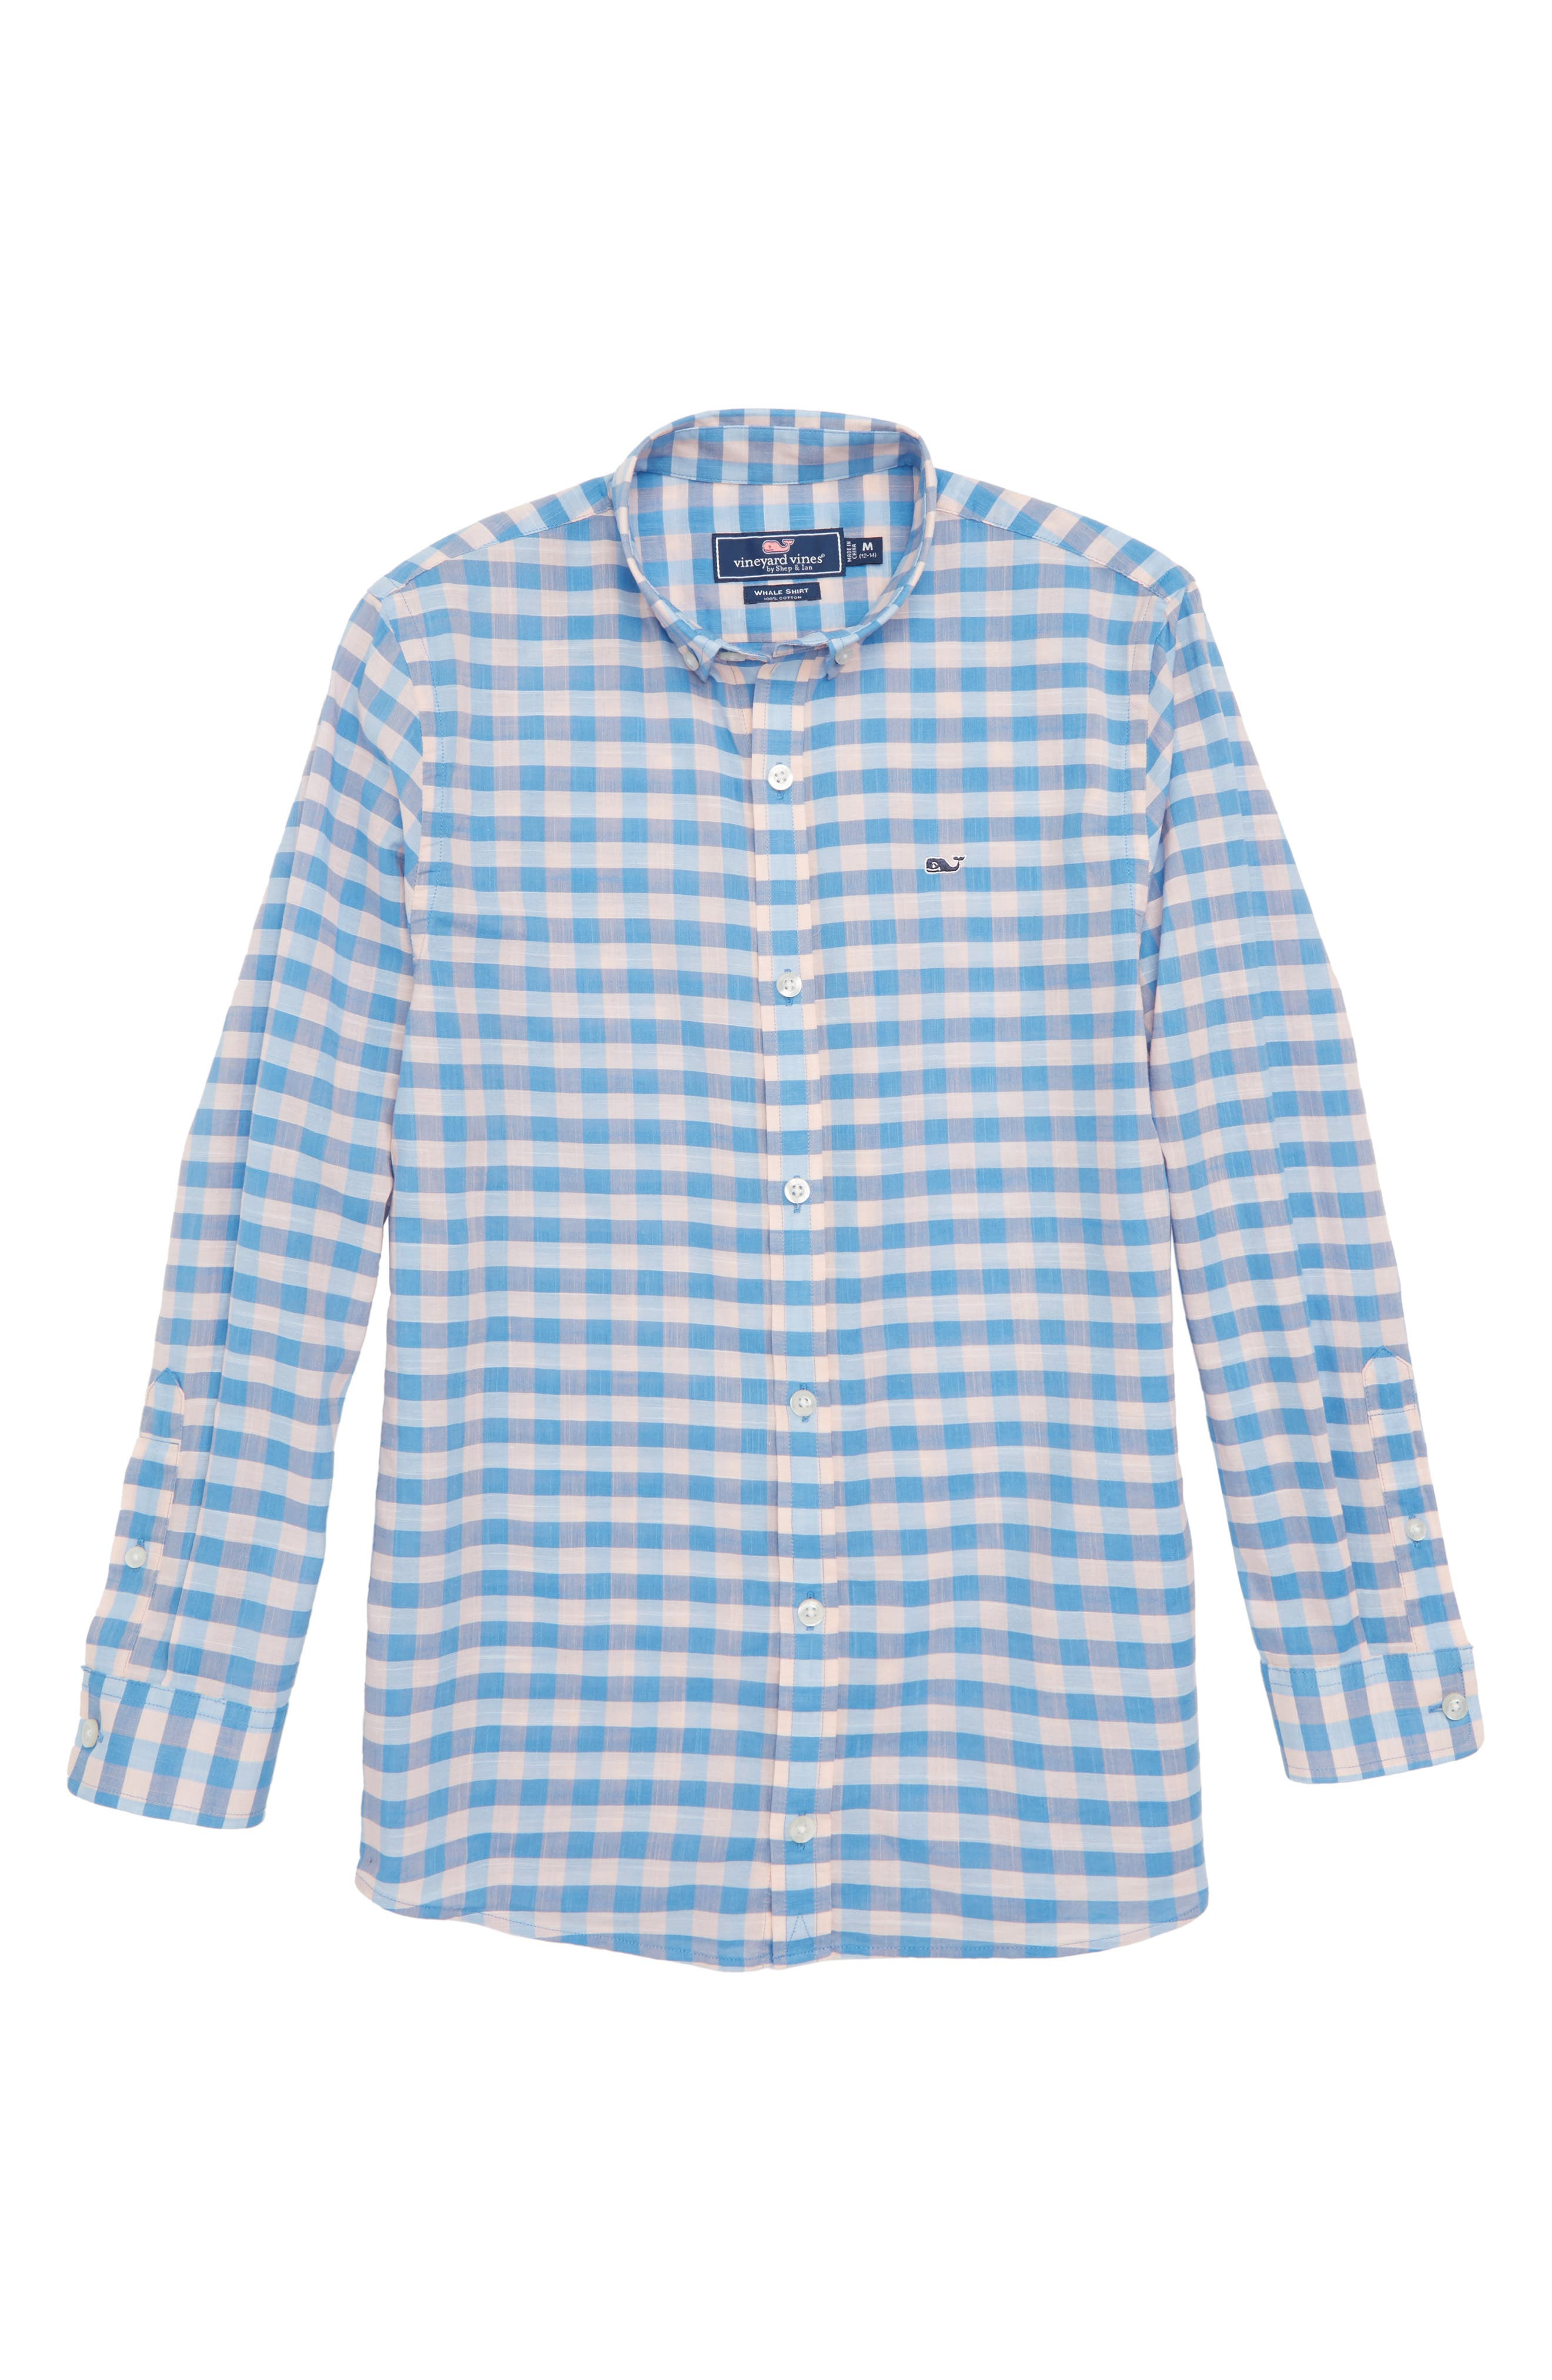 Pelican Cay Beach Check Woven Shirt,                         Main,                         color, 696